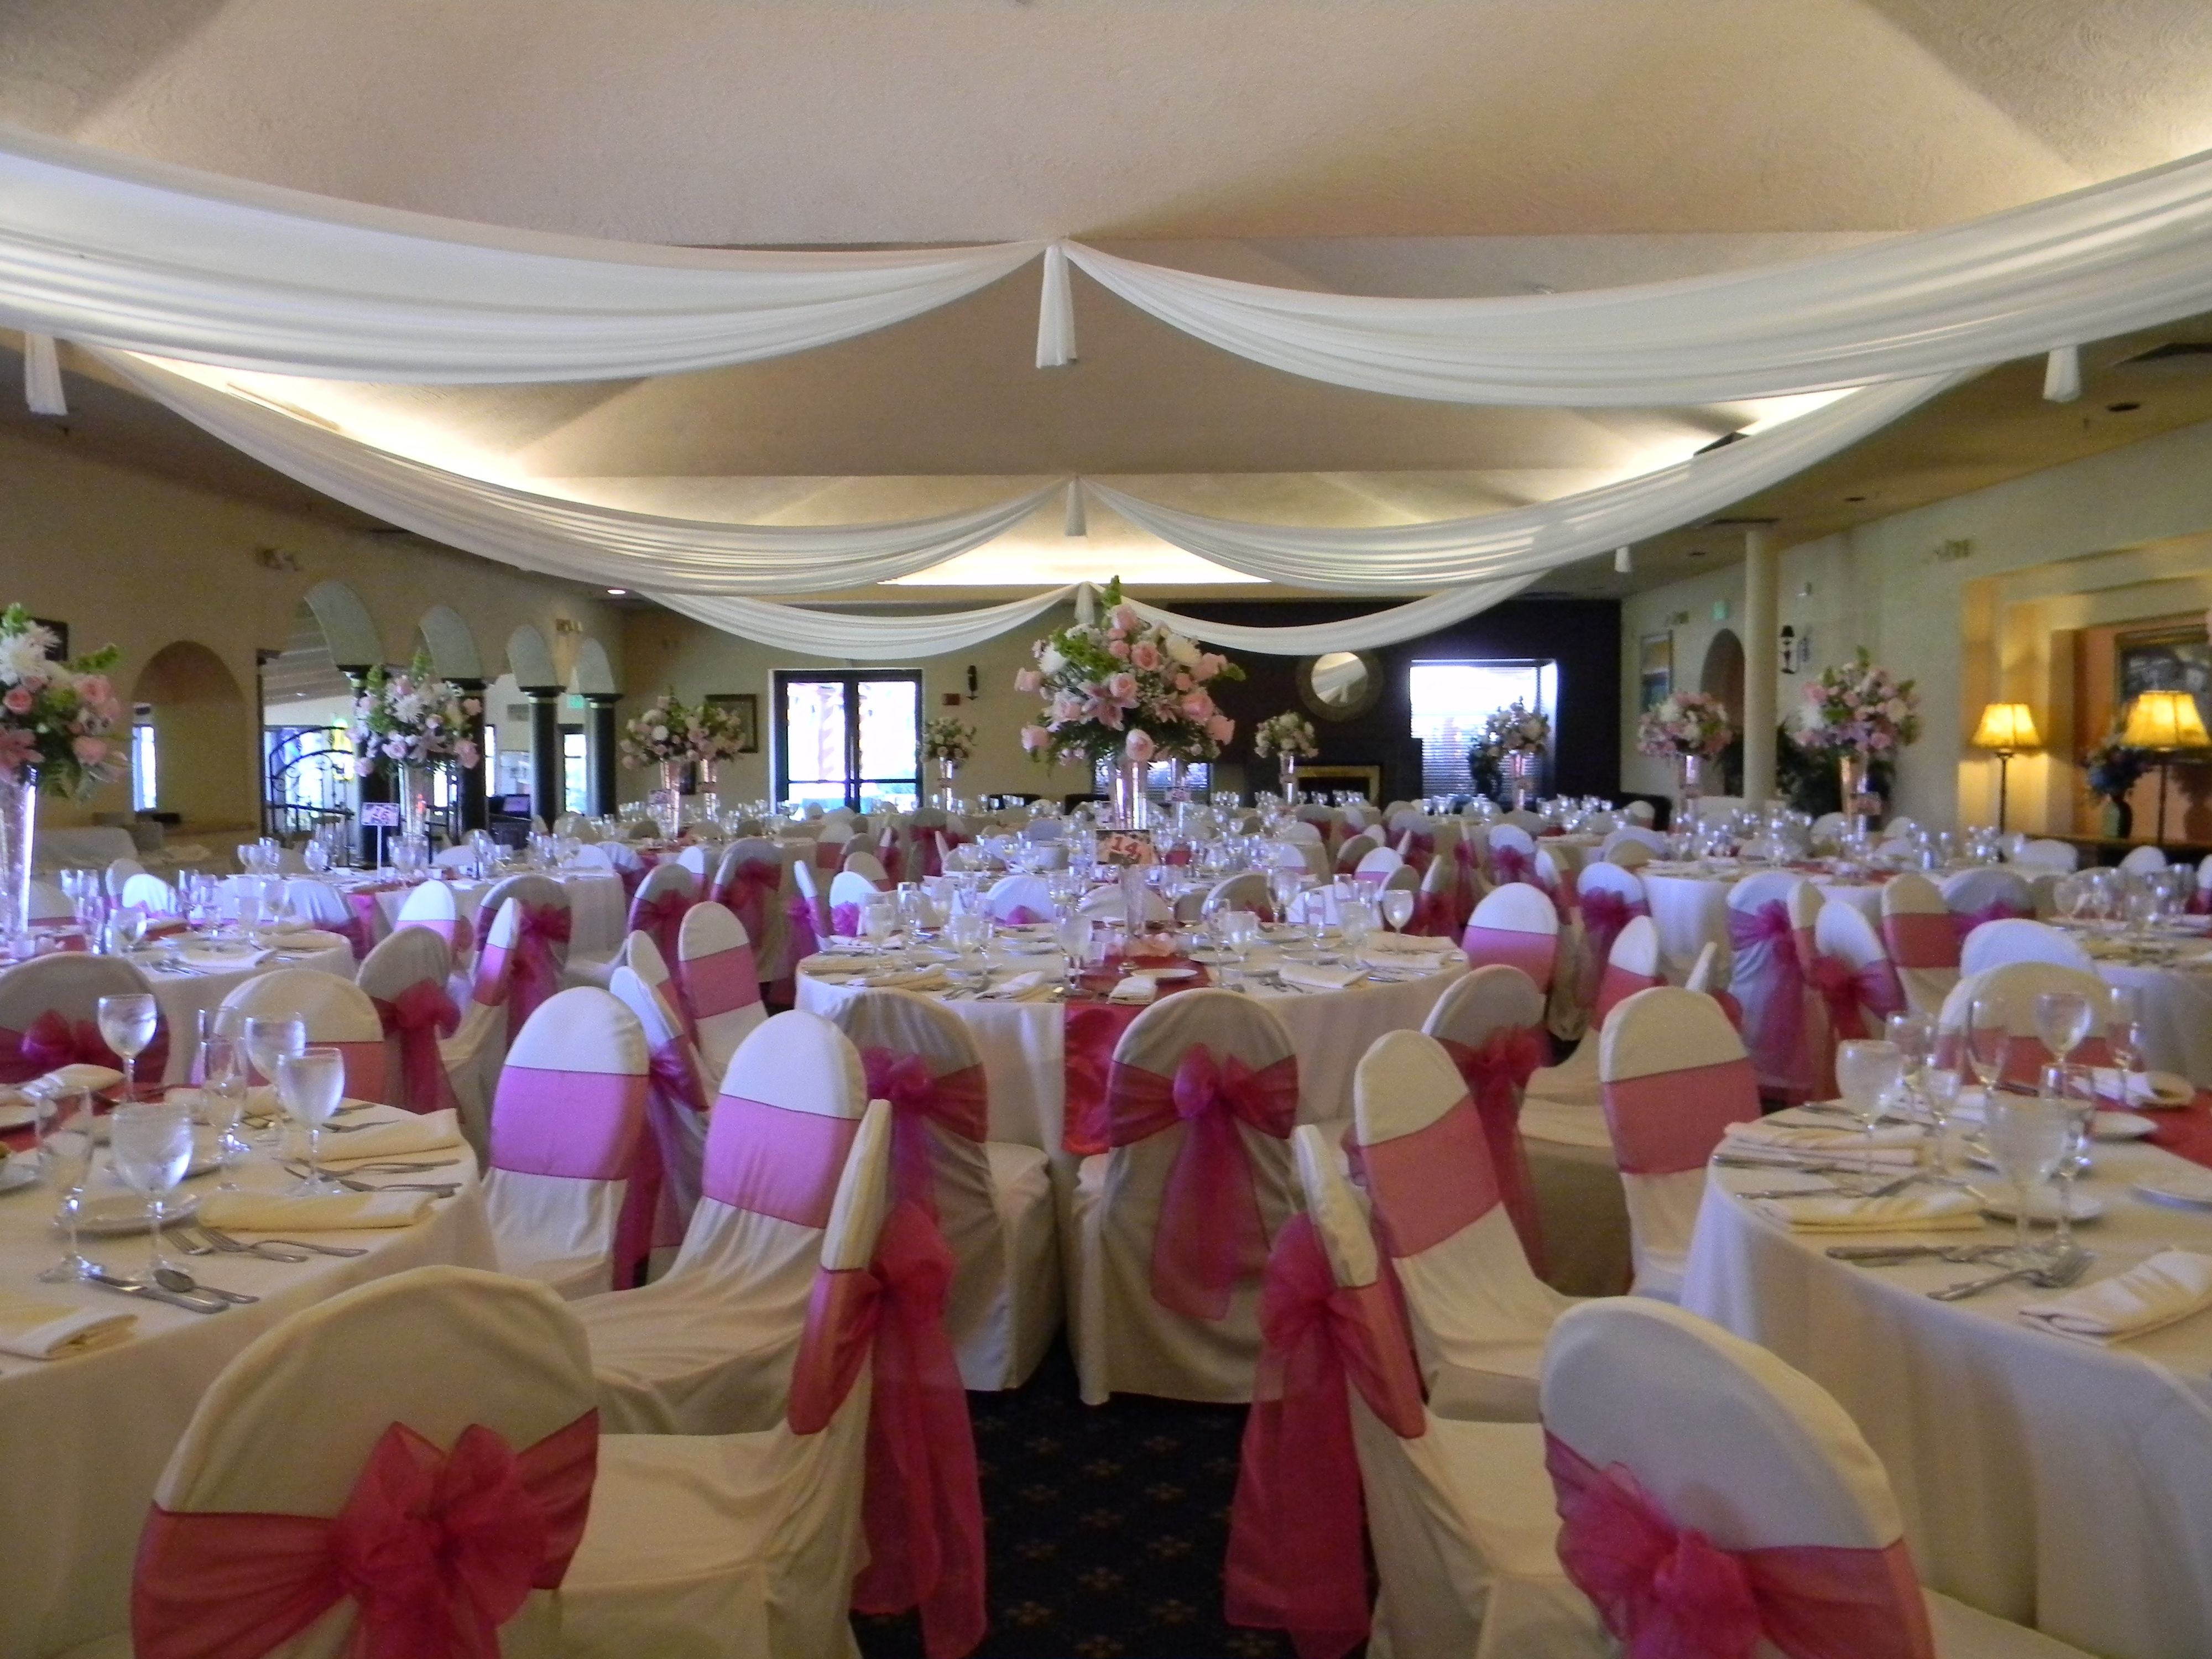 Full room view. | California wedding venues, Southern ...